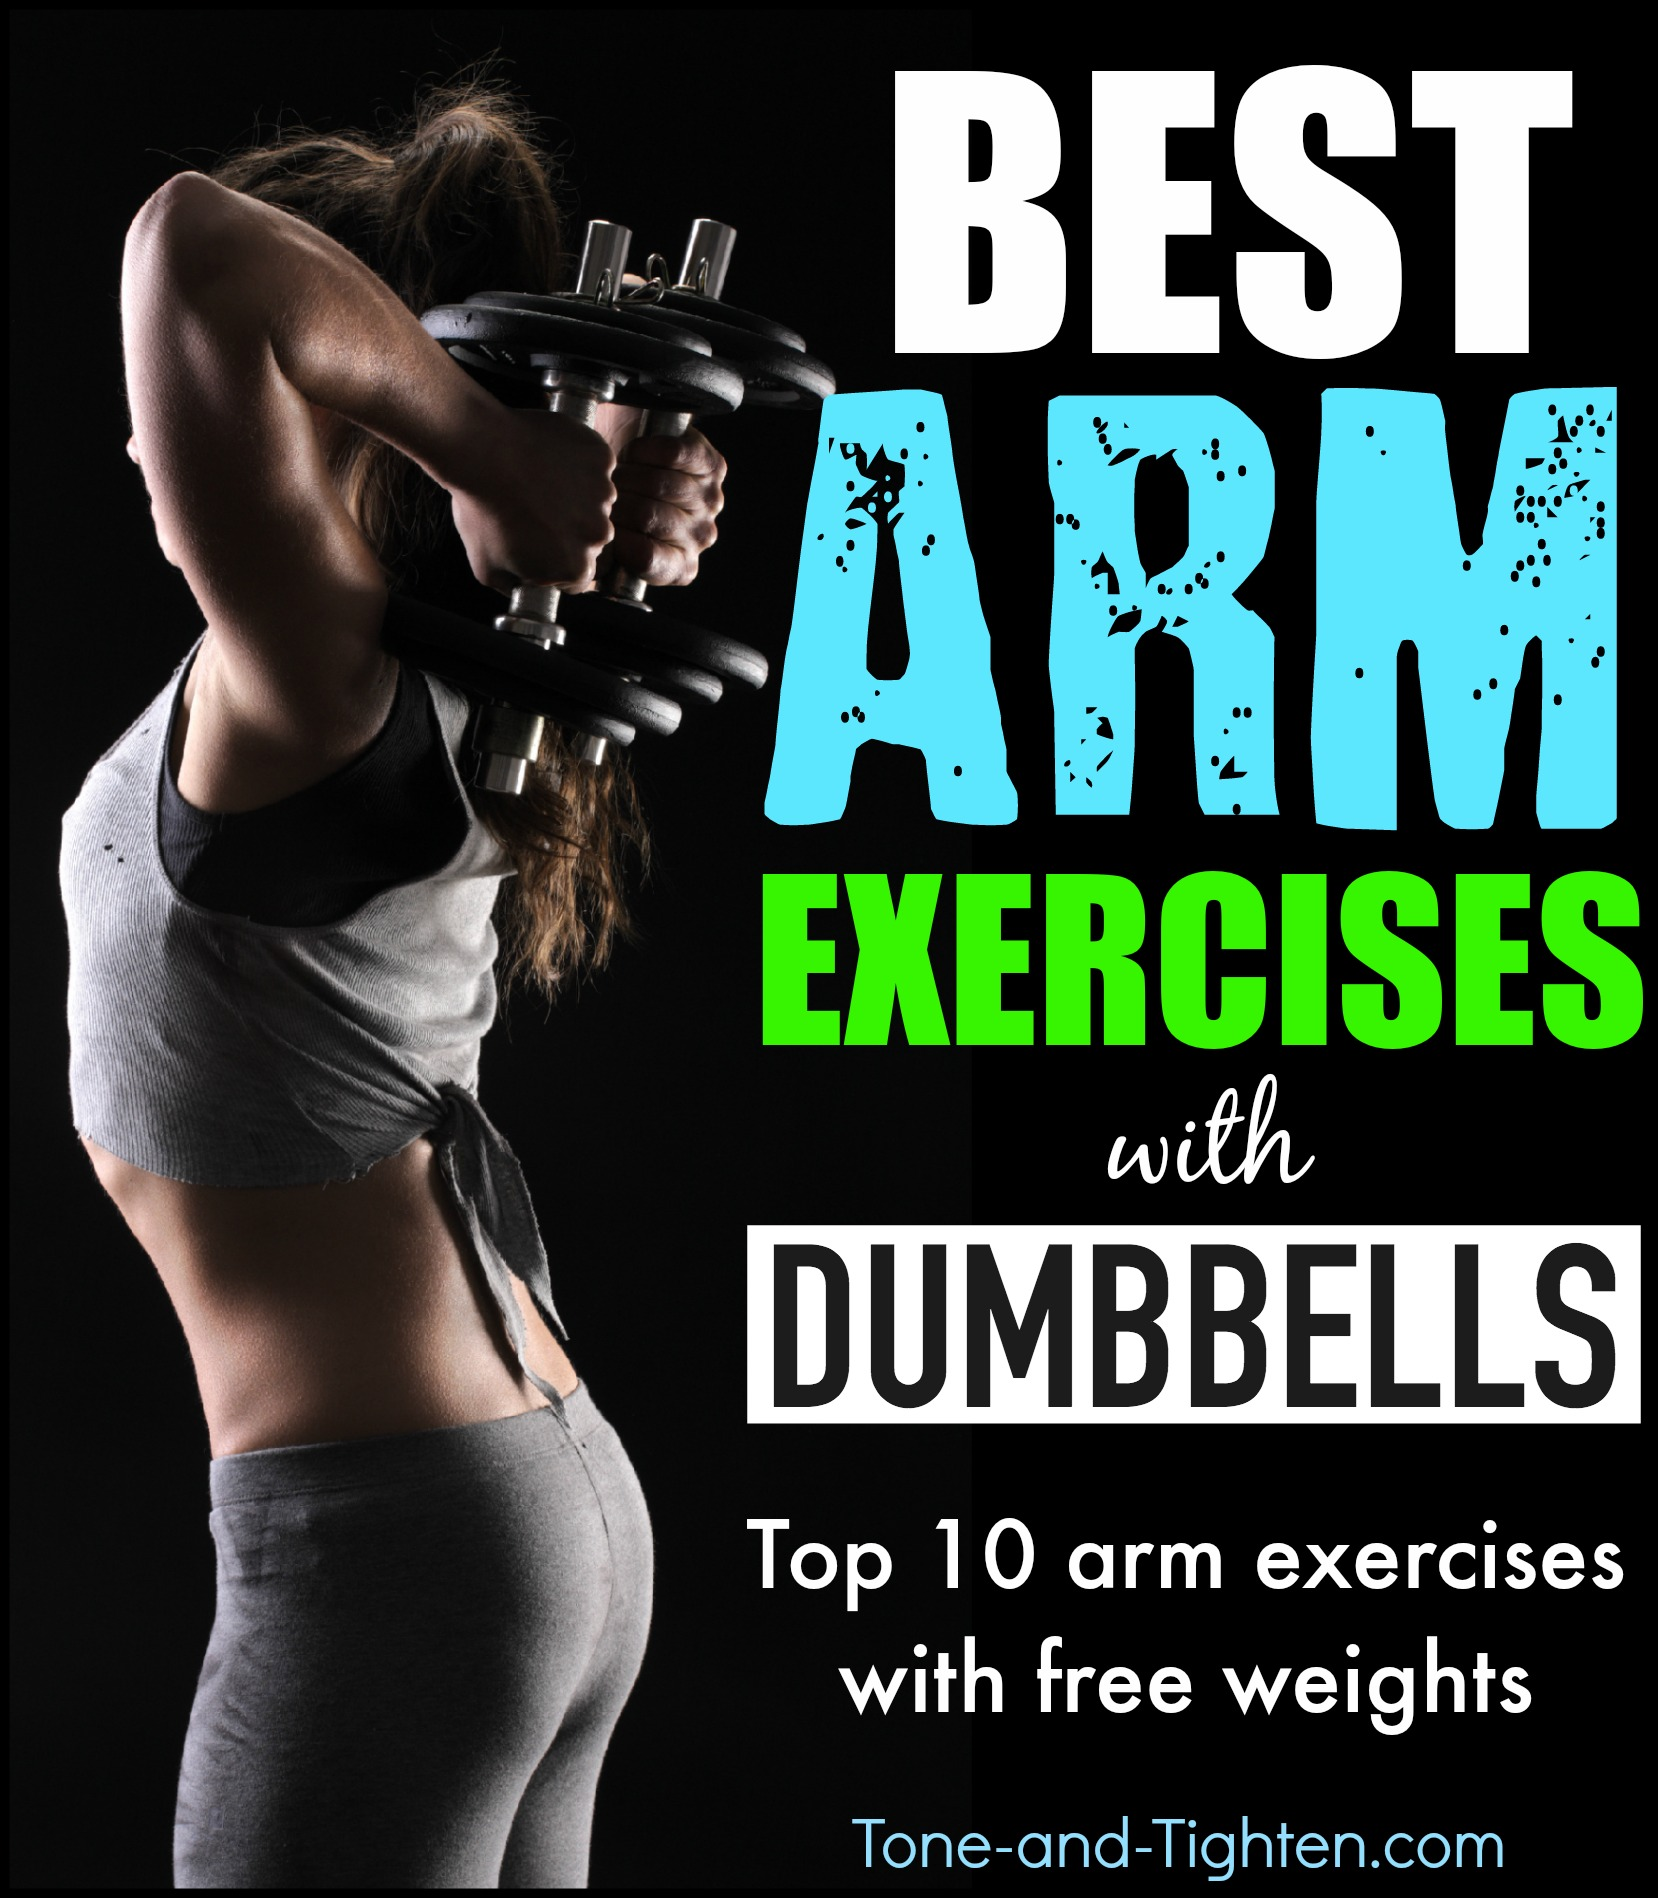 10 Of The Best Dumbbell Exercises To Tone Your Arms